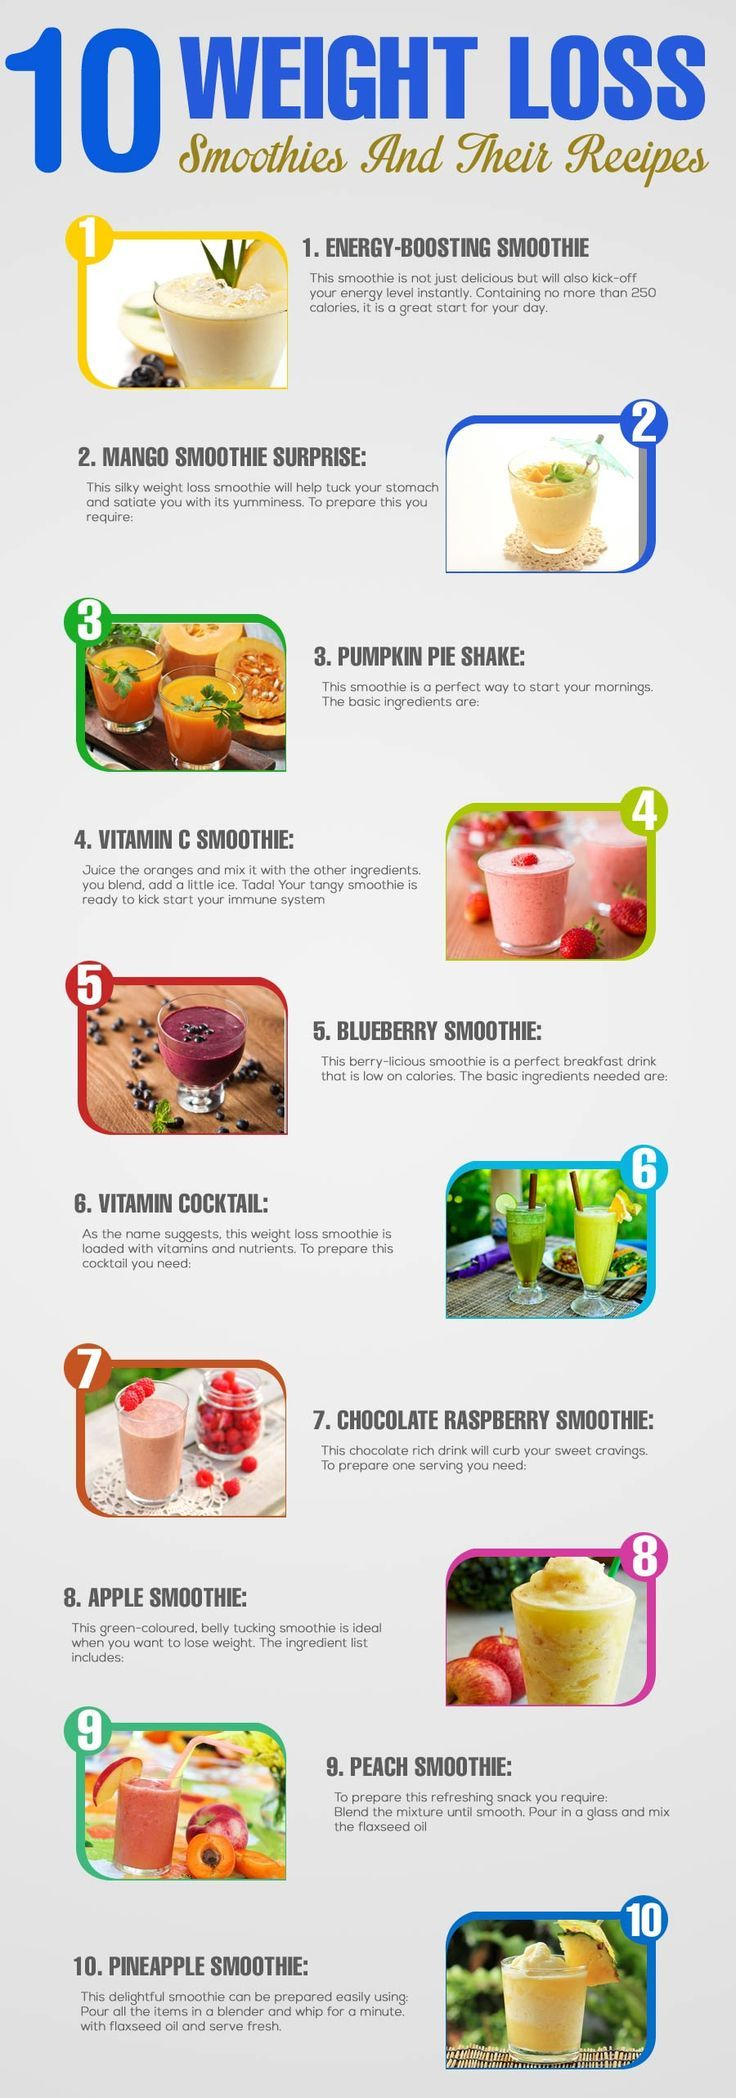 10 Weight Loss Smoothies Pictures Photos and Images for ...